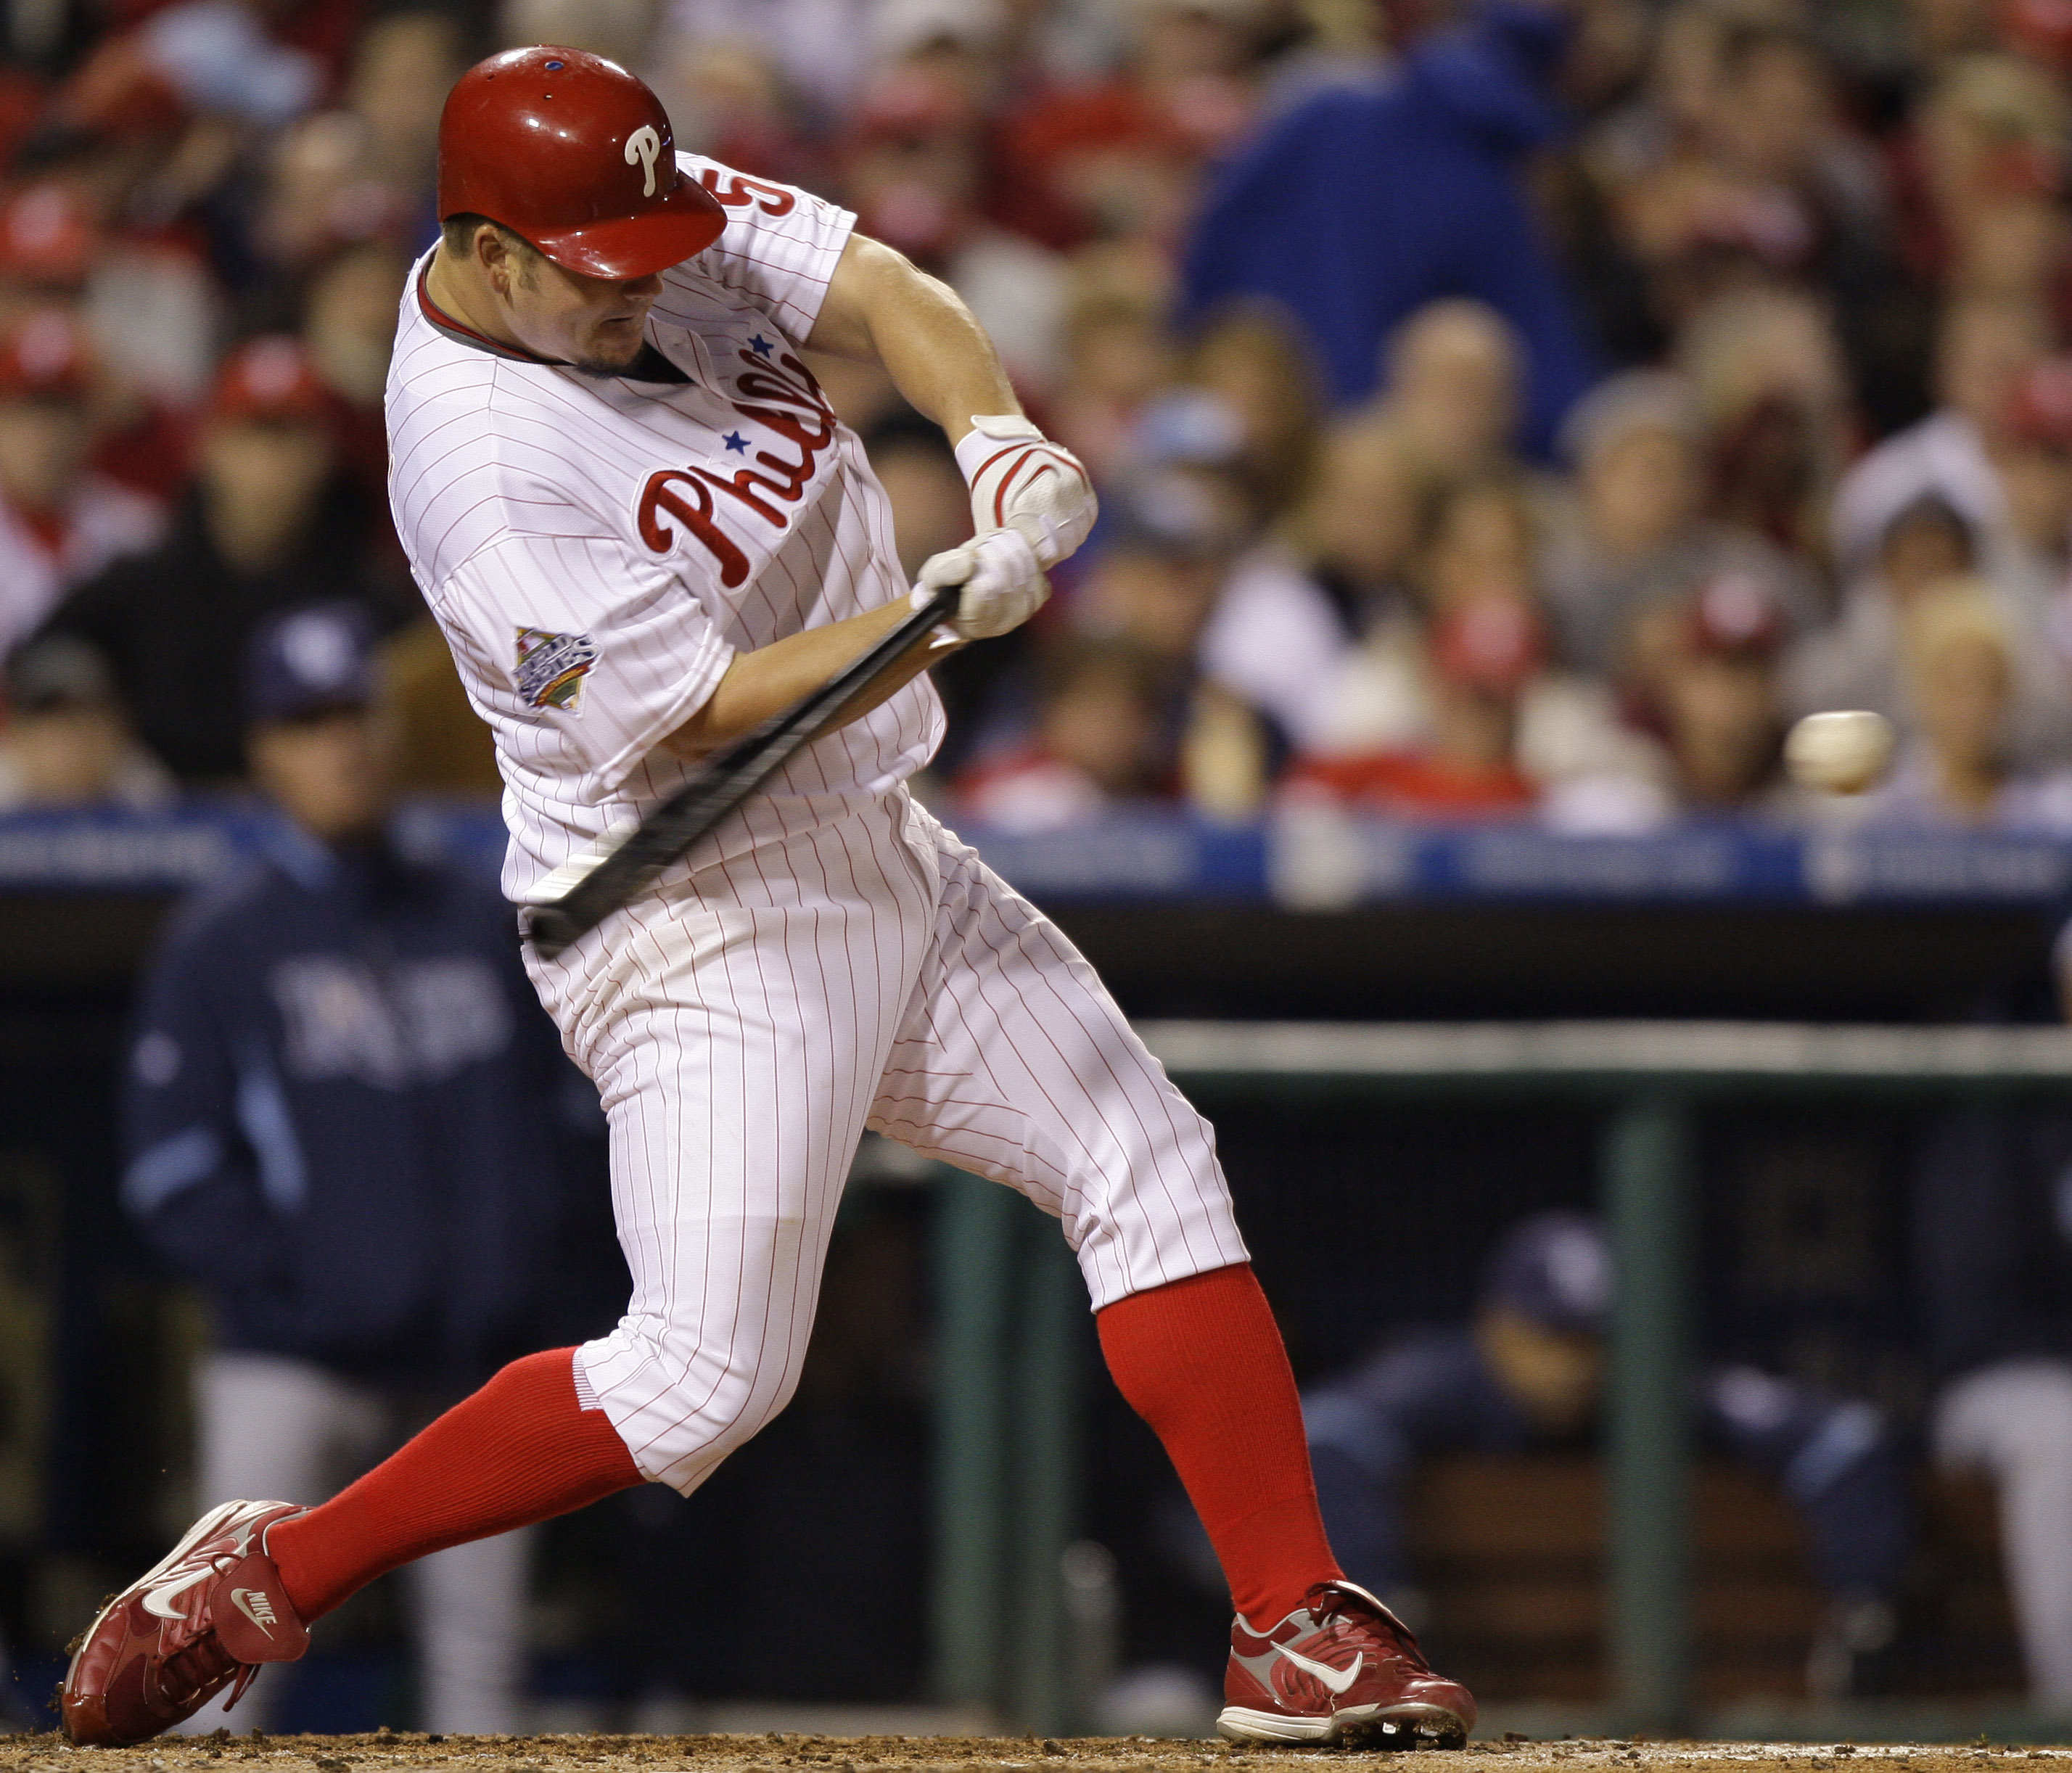 Philadelphia Phillies' Joe Blanton hits a home run during the fifth inning of Game 4 of the baseball World Series against the Tampa Bay Rays in Philad...